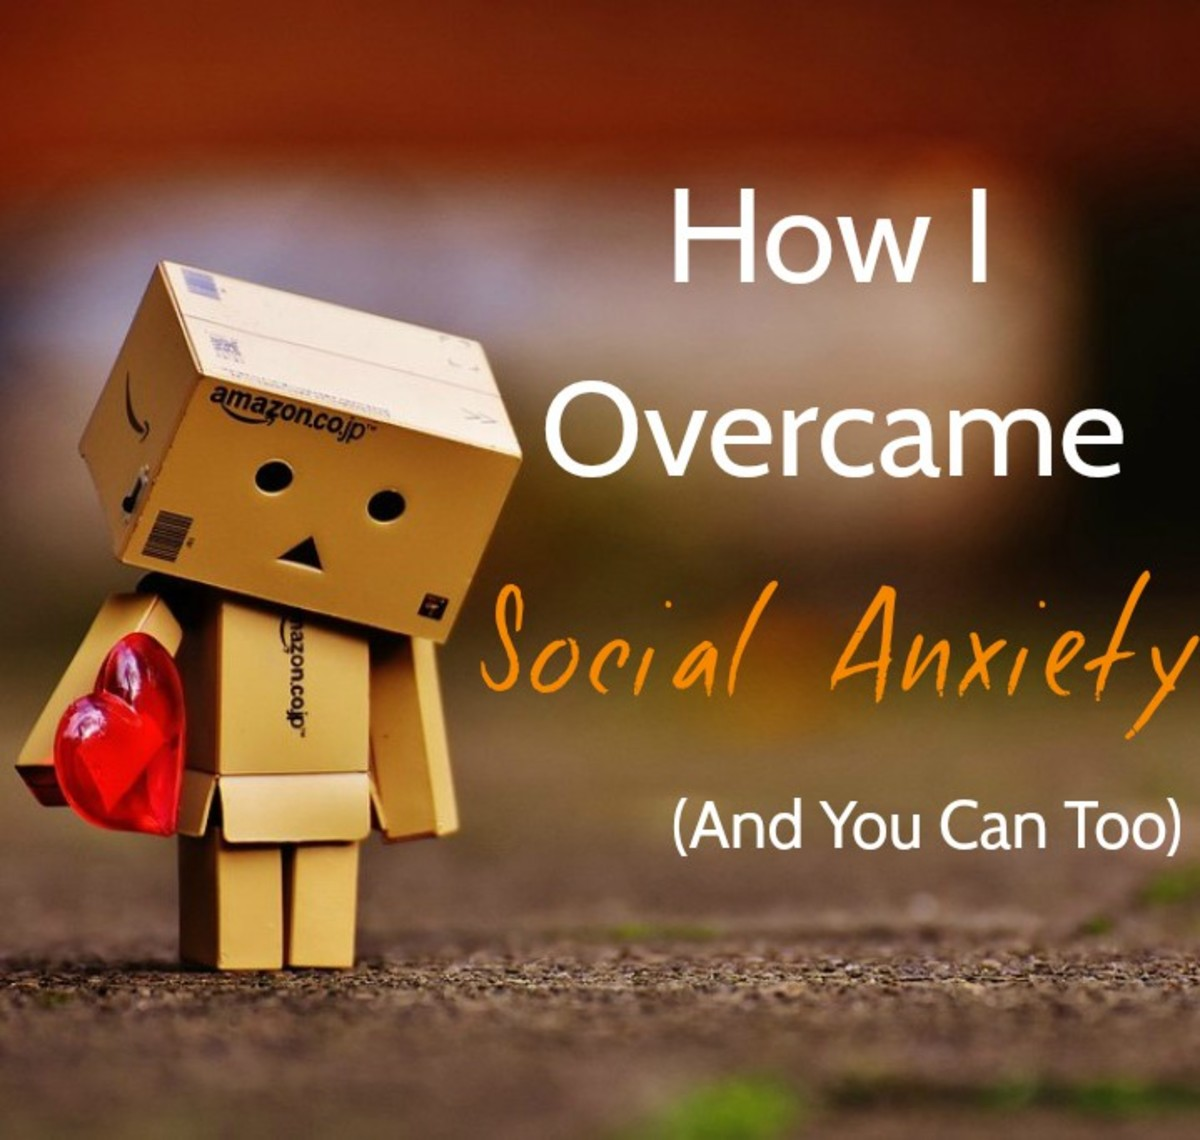 How I Overcame Social Anxiety (and You Can Too)